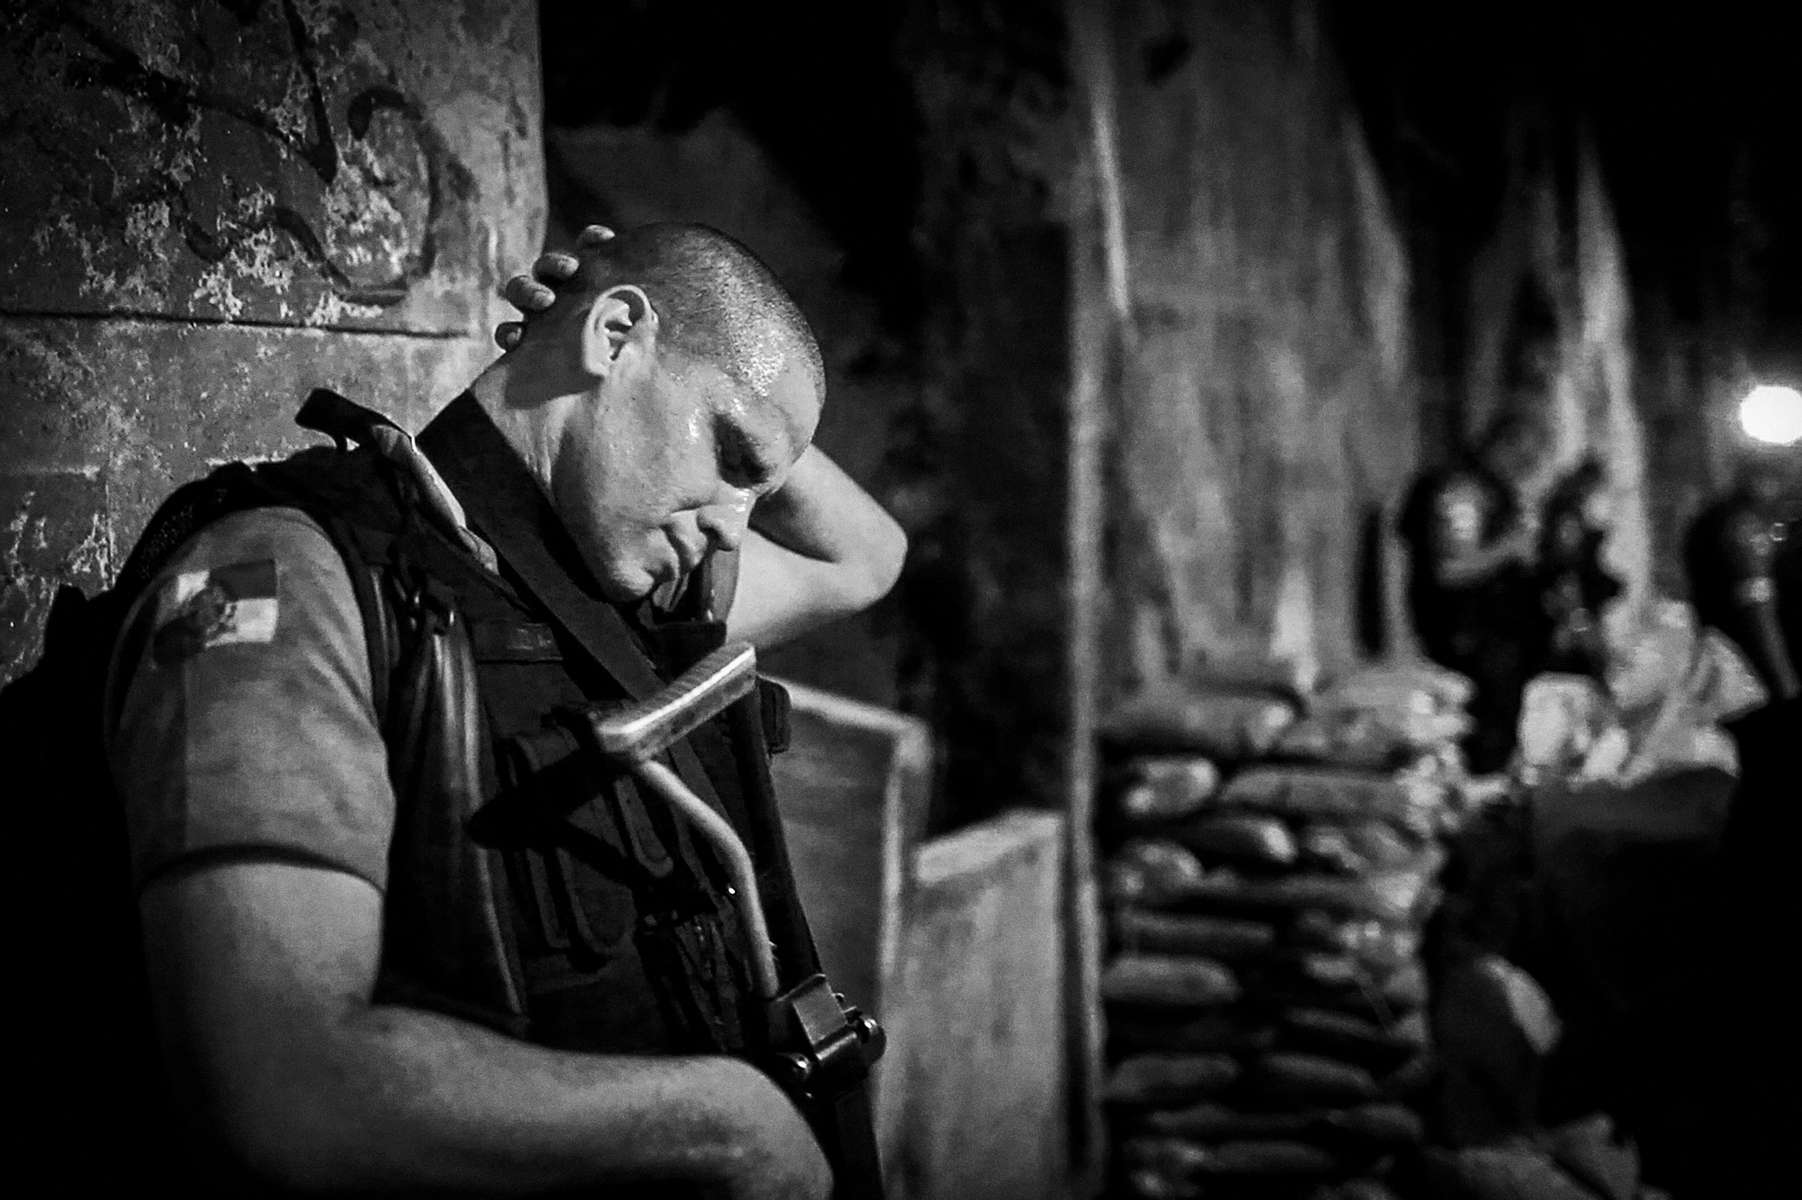 UPP soldier Private Vidal from the 4º UPP of Sao Carlos, breaks on crying after helping evacuate an officer that had been shot by gangs while on patrol in Sao Carlos, Rio de Janeiro, Brazil, May 5, 2012.